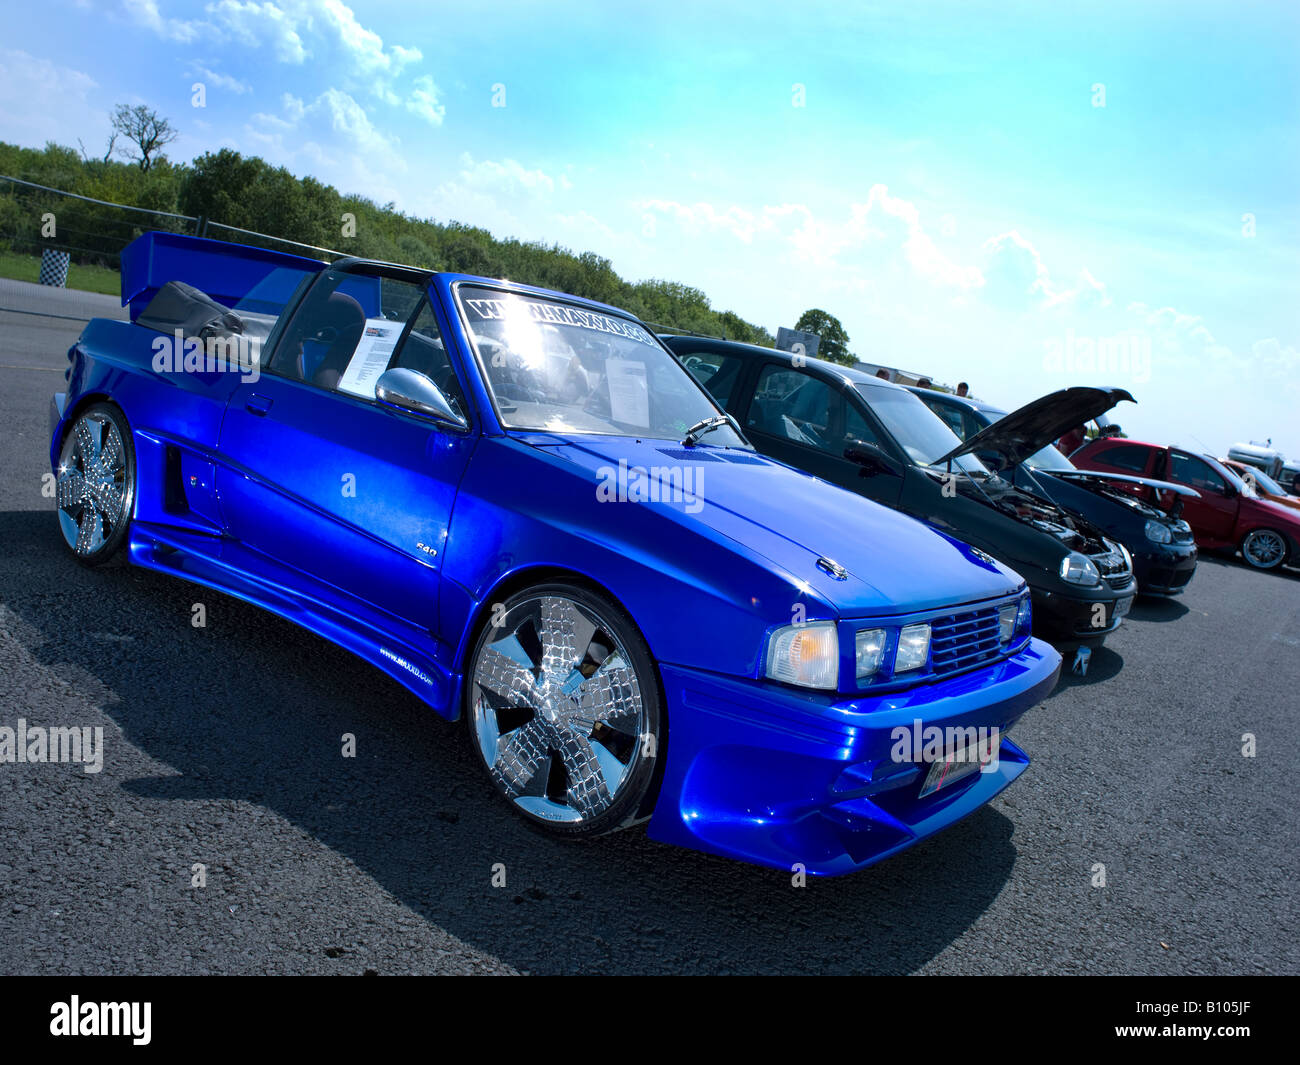 blue chrome modified max power ford escort in metallic blue - Stock Image